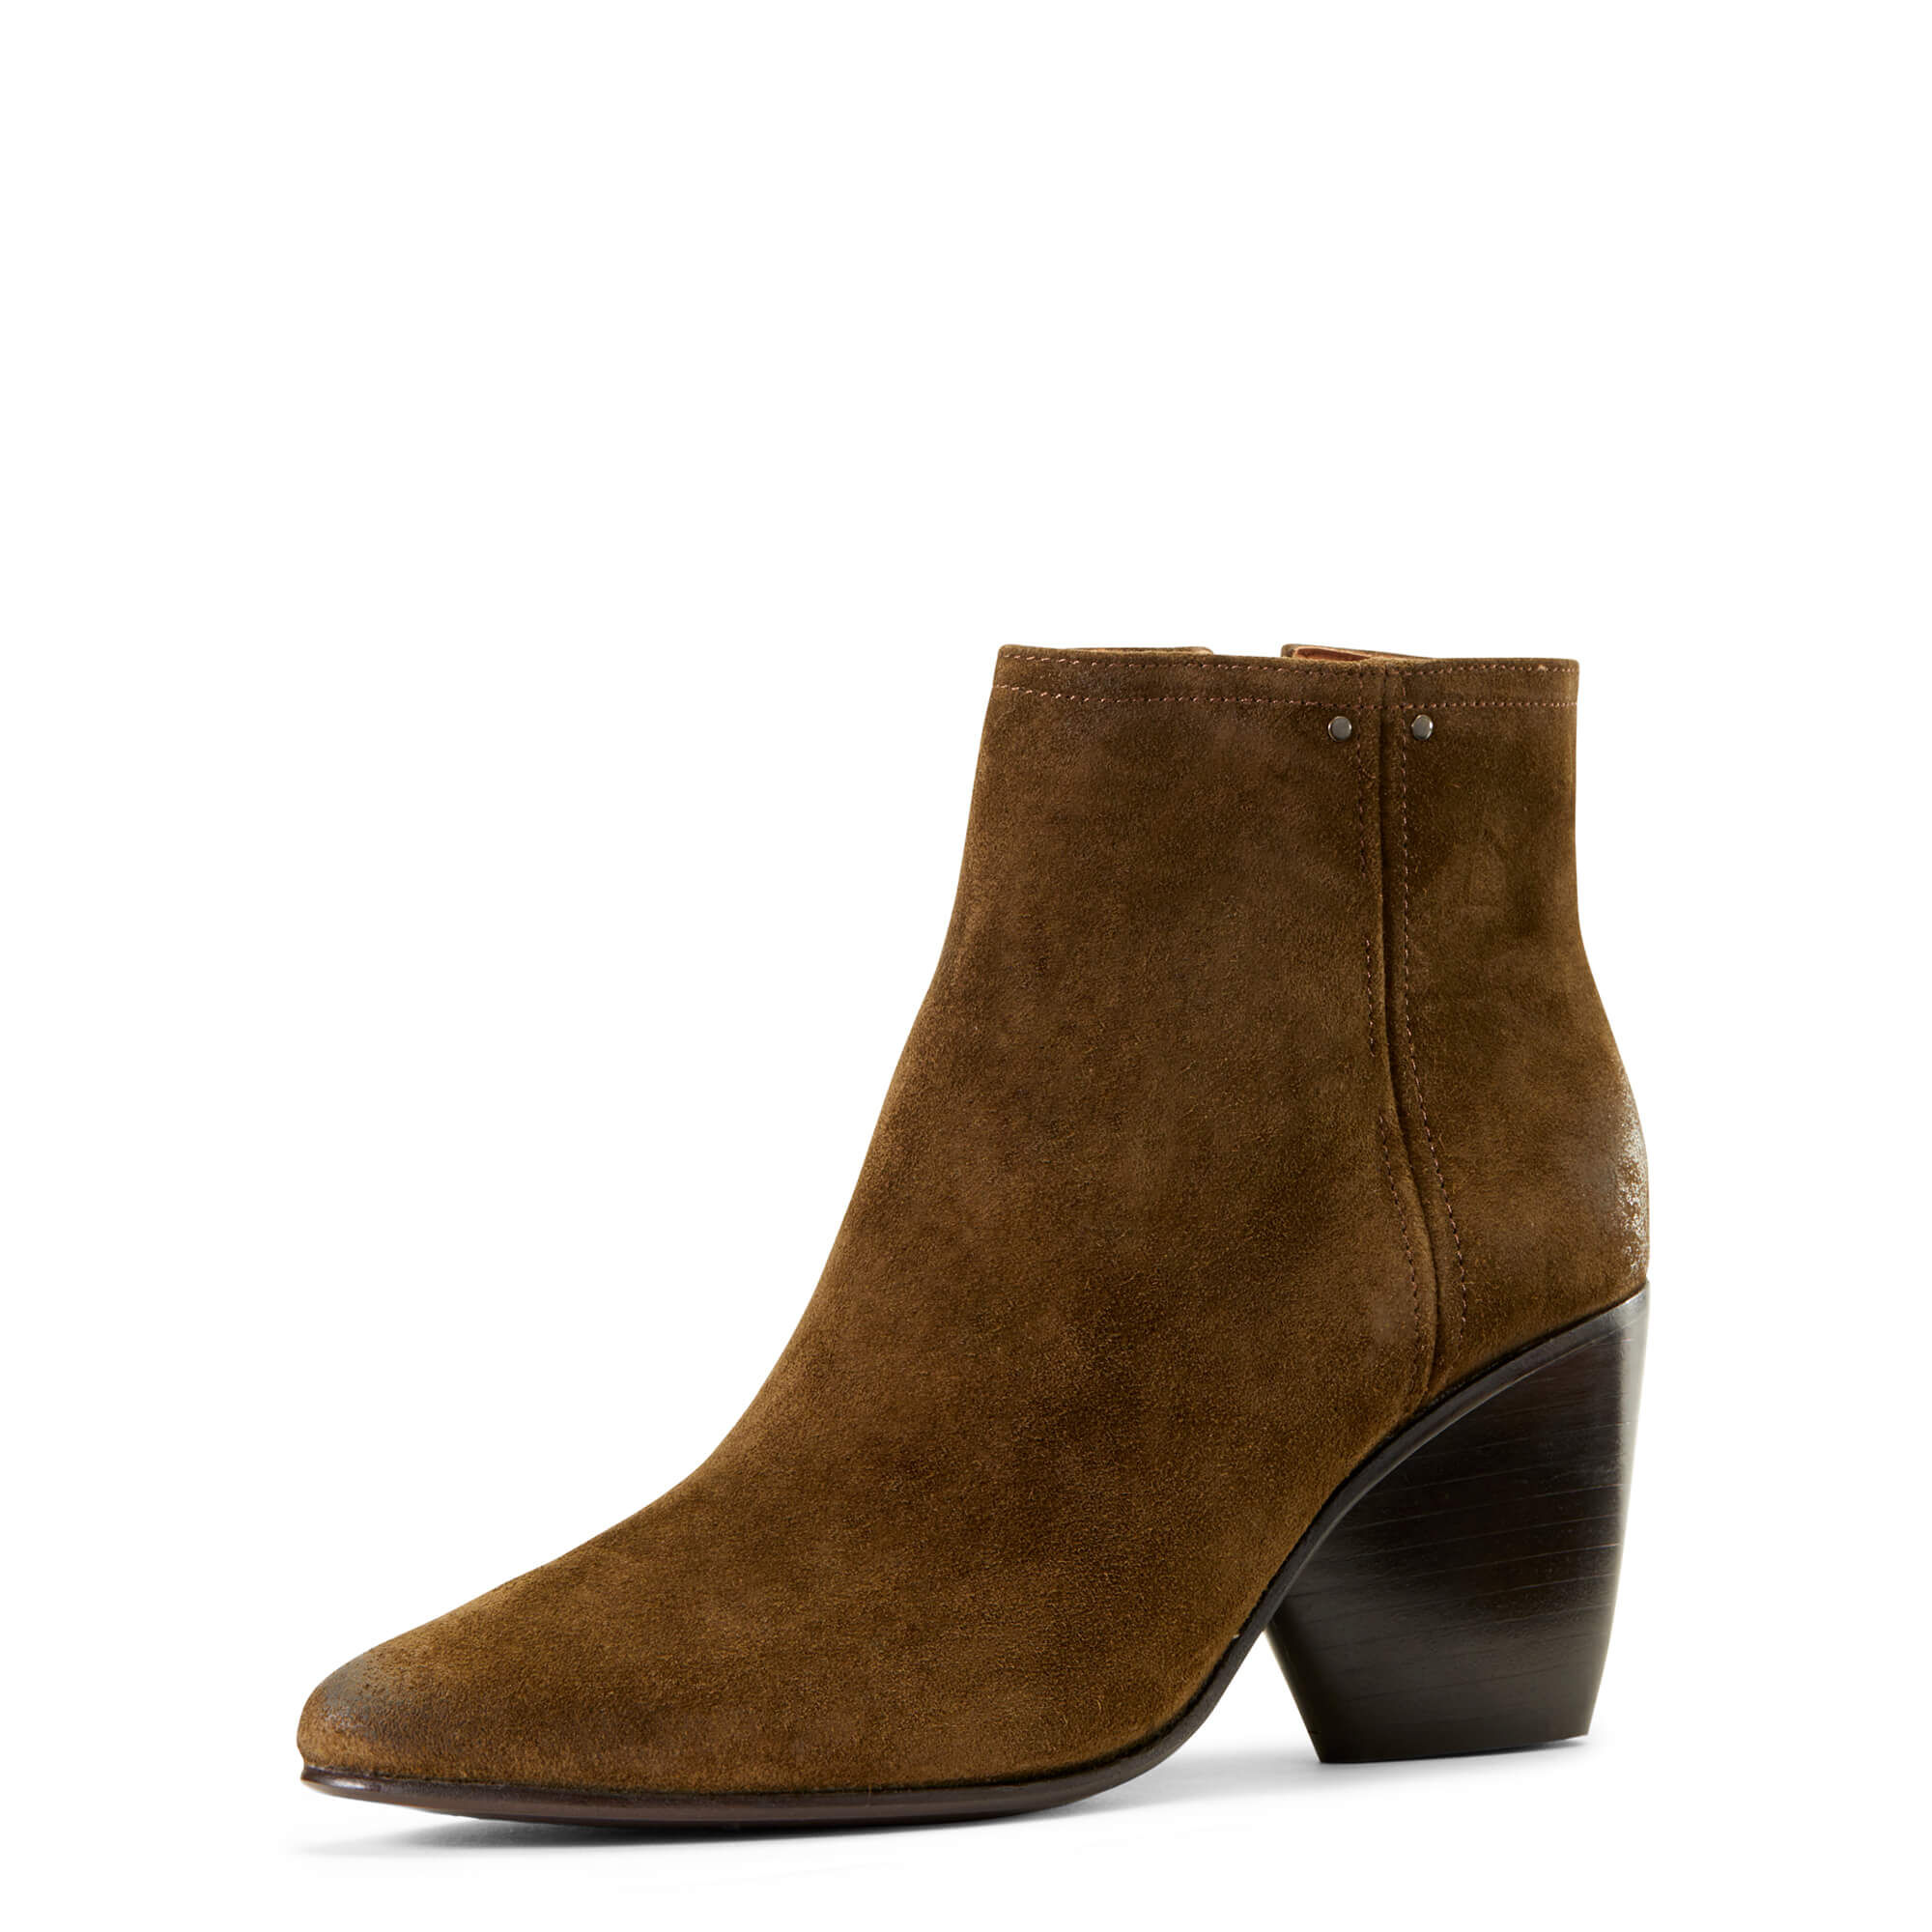 Women's Laney Boots in Olive Suede Leather by Ariat Two24